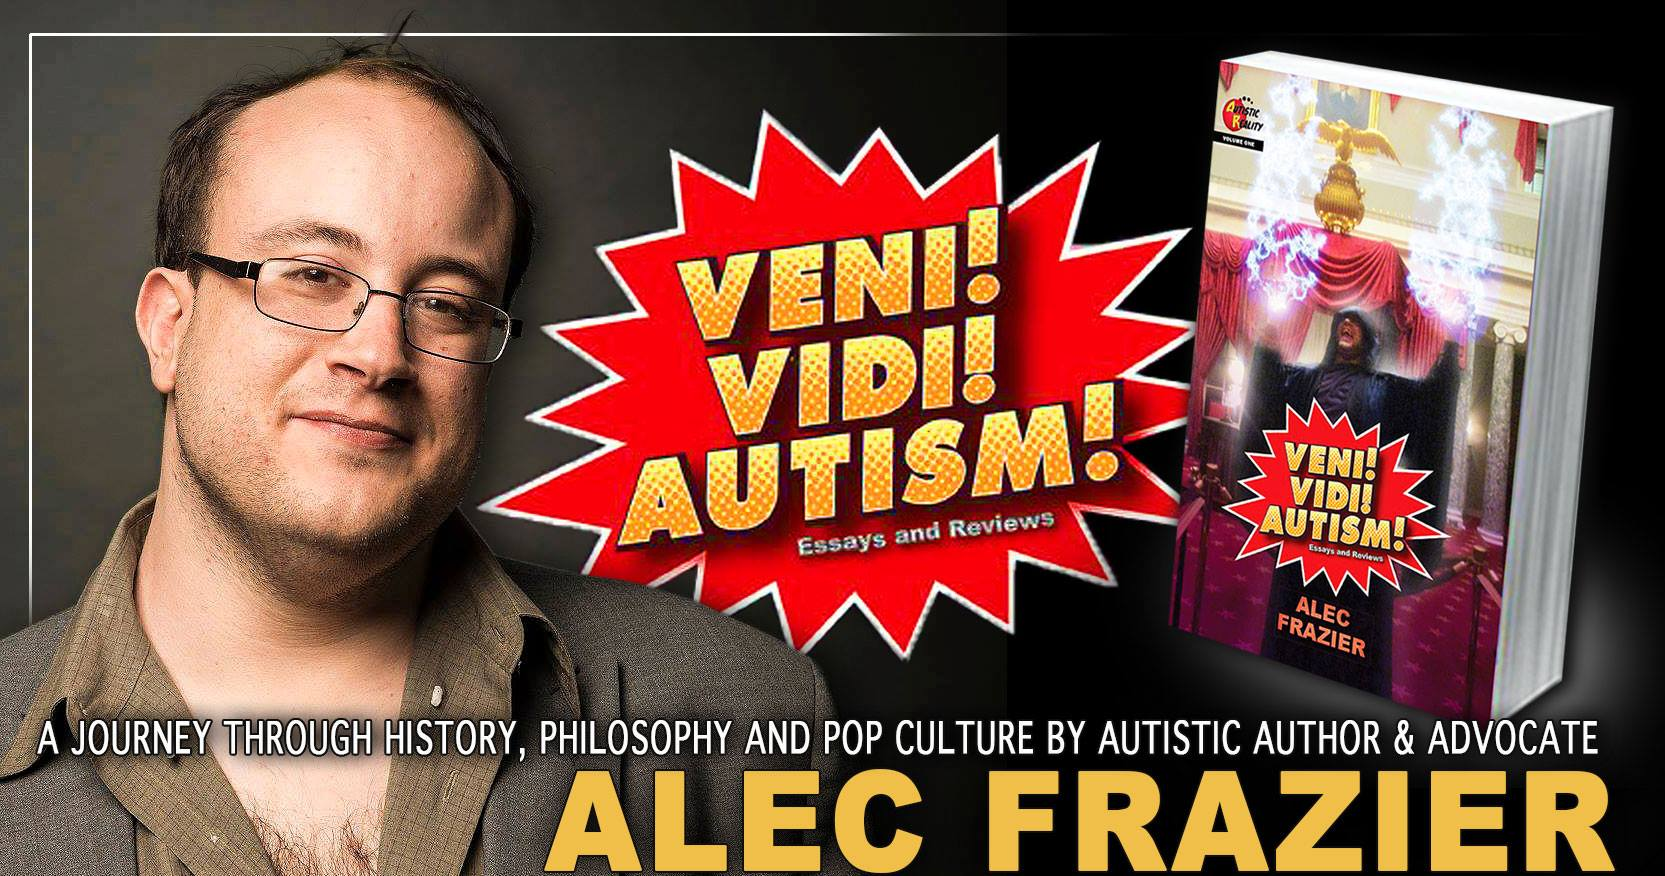 """Alec Frazier posing in a wide collared shirt next to his book cover and the words """"Veni! Vidi! Autism!"""" in a comic-style bubble between them"""